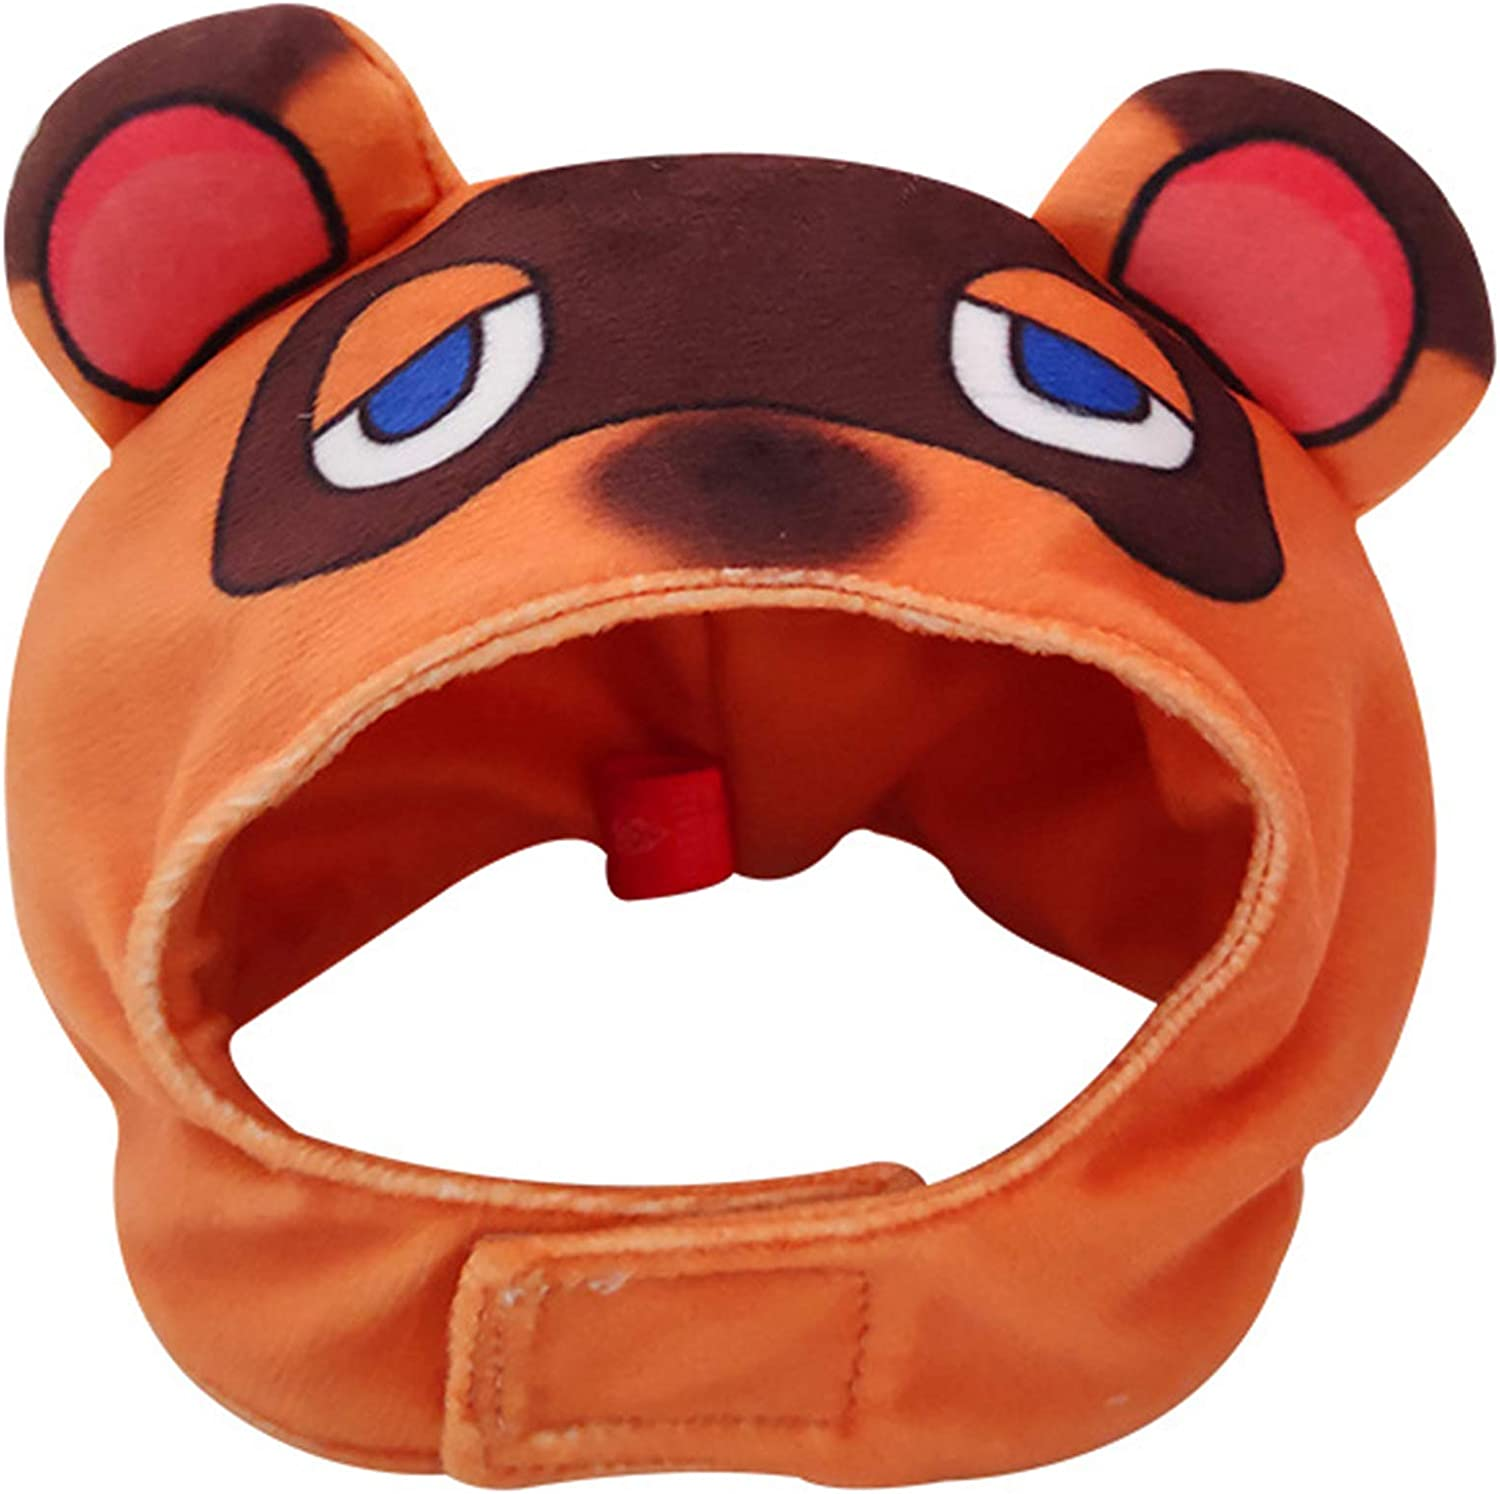 Amazon Com Lopbraa Tom Nook Hat For Cat Small Dog Pet Headwear Tom Nook Costume Hats Cat Caps Accessories Pet Supplies